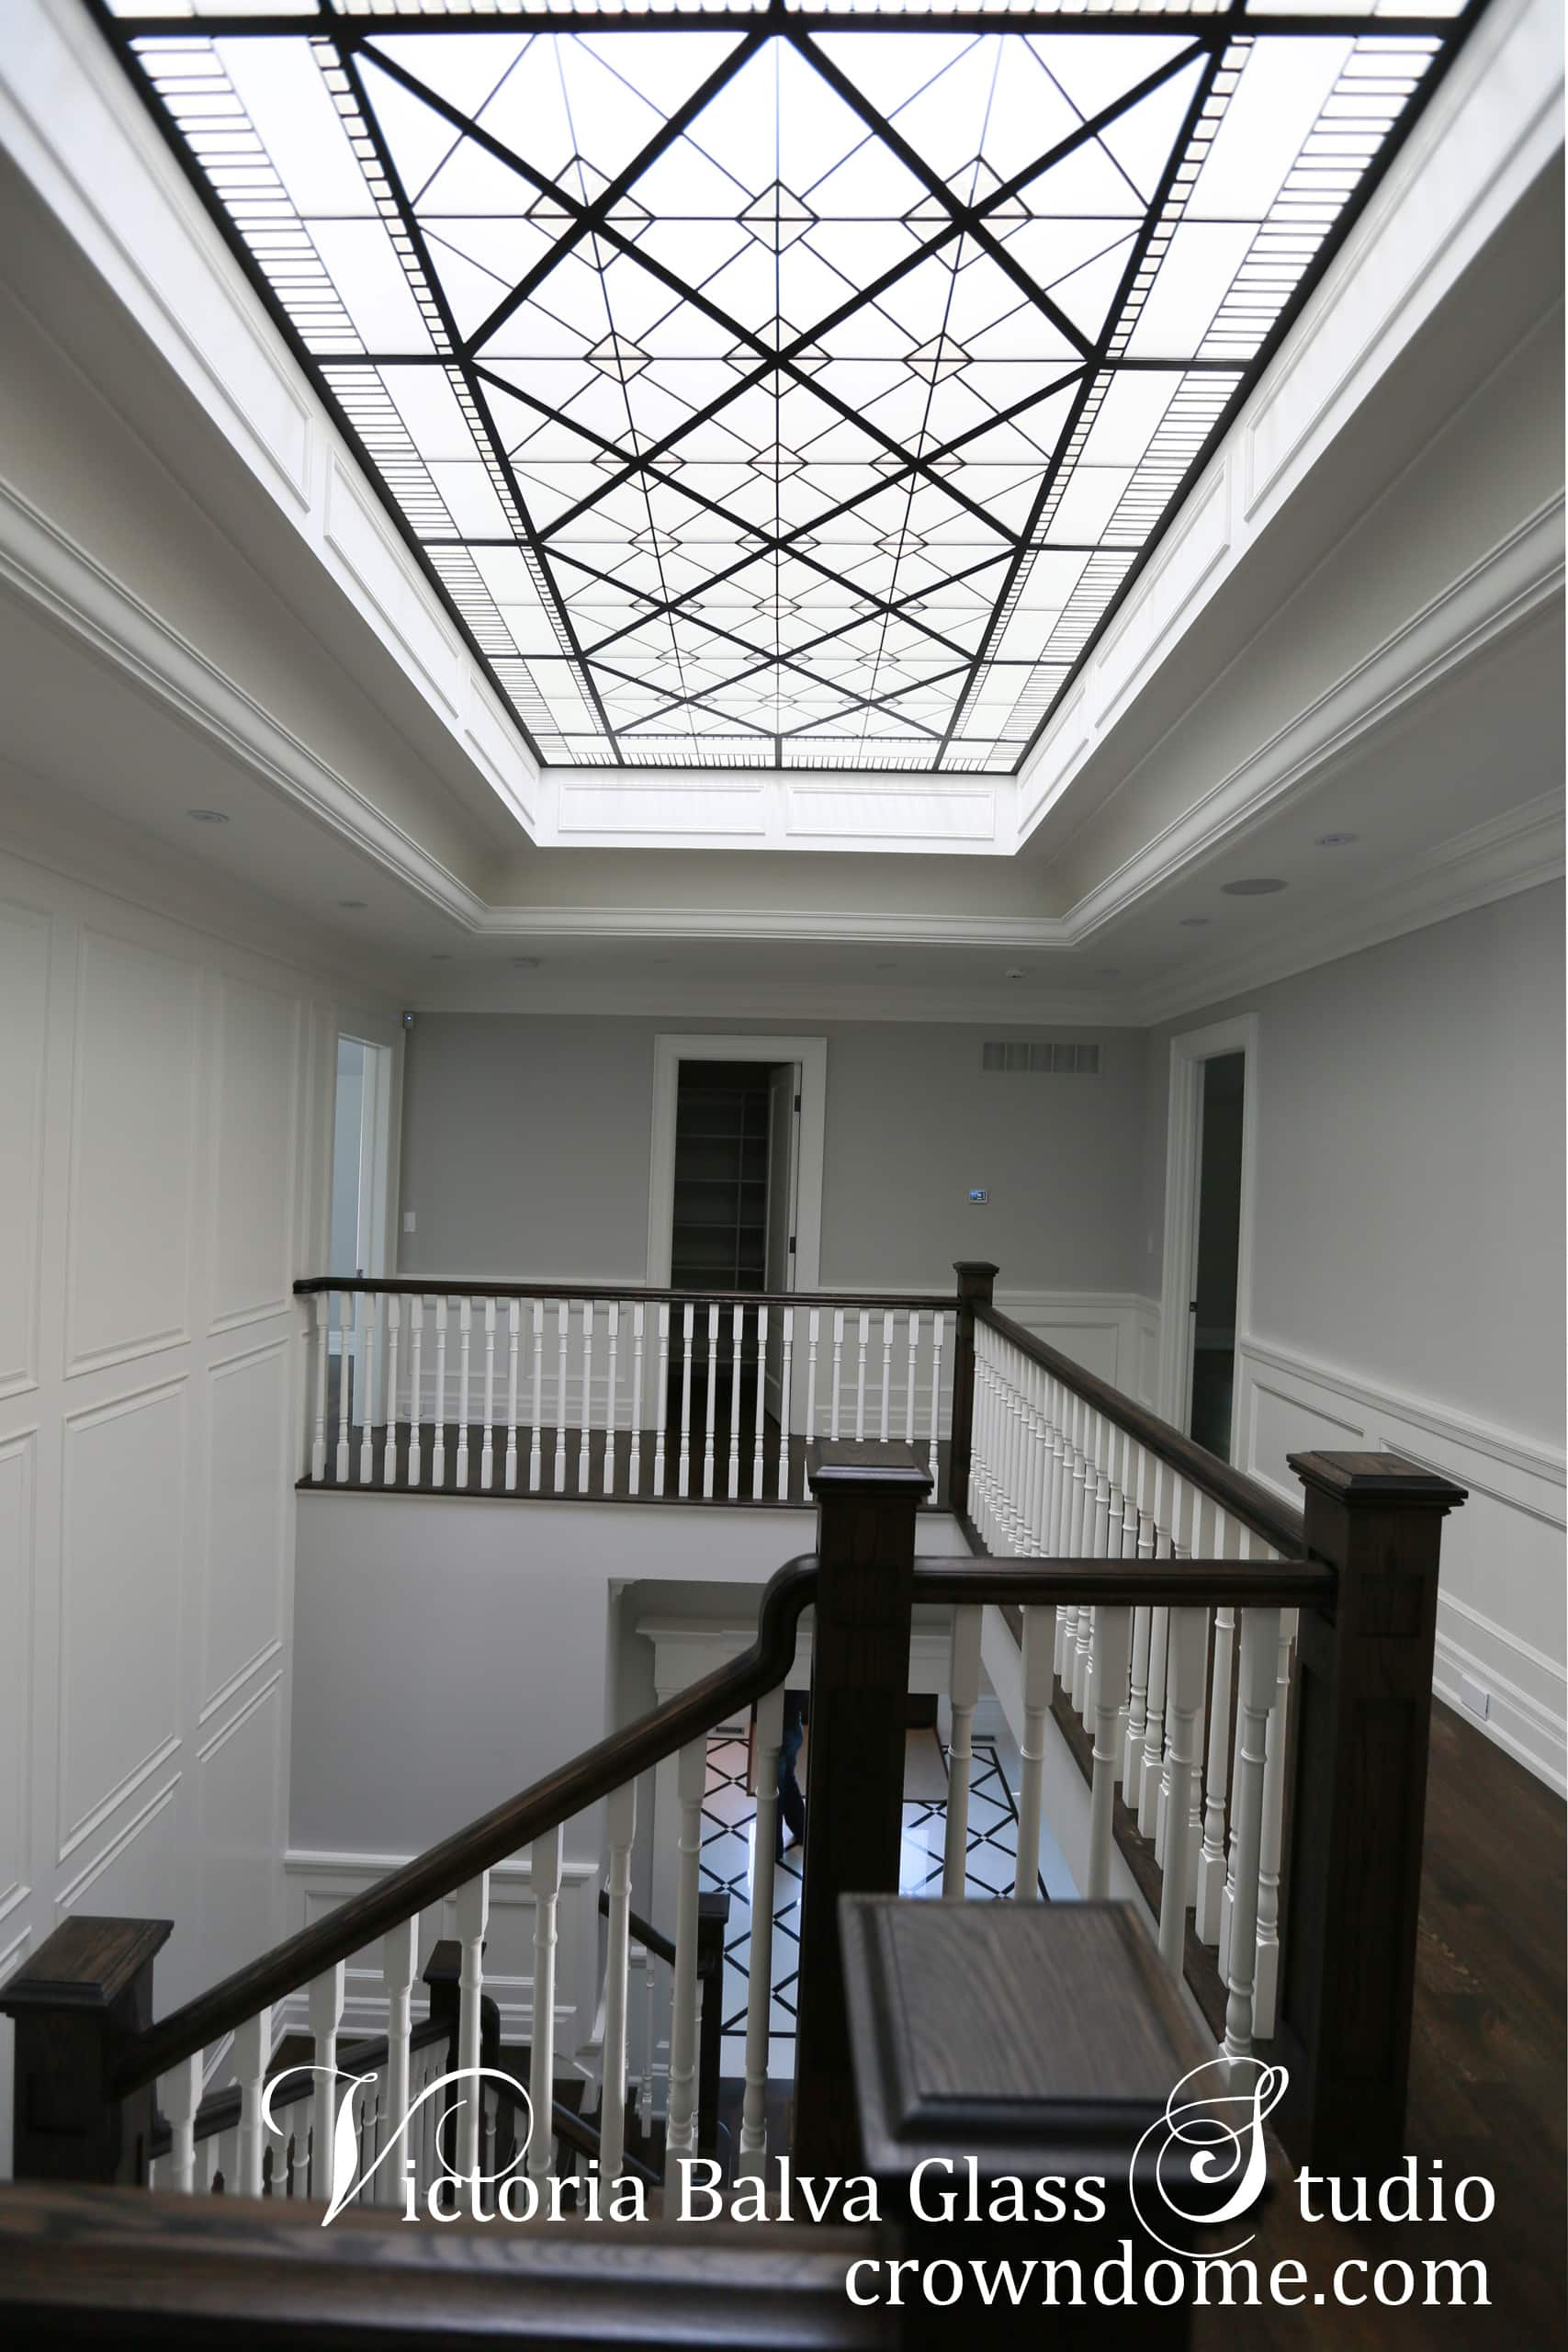 Large leaded glass skylight ceiling with clear beveled glass Cricket Club for a custom built house in traditional style. Second floor stairwell view